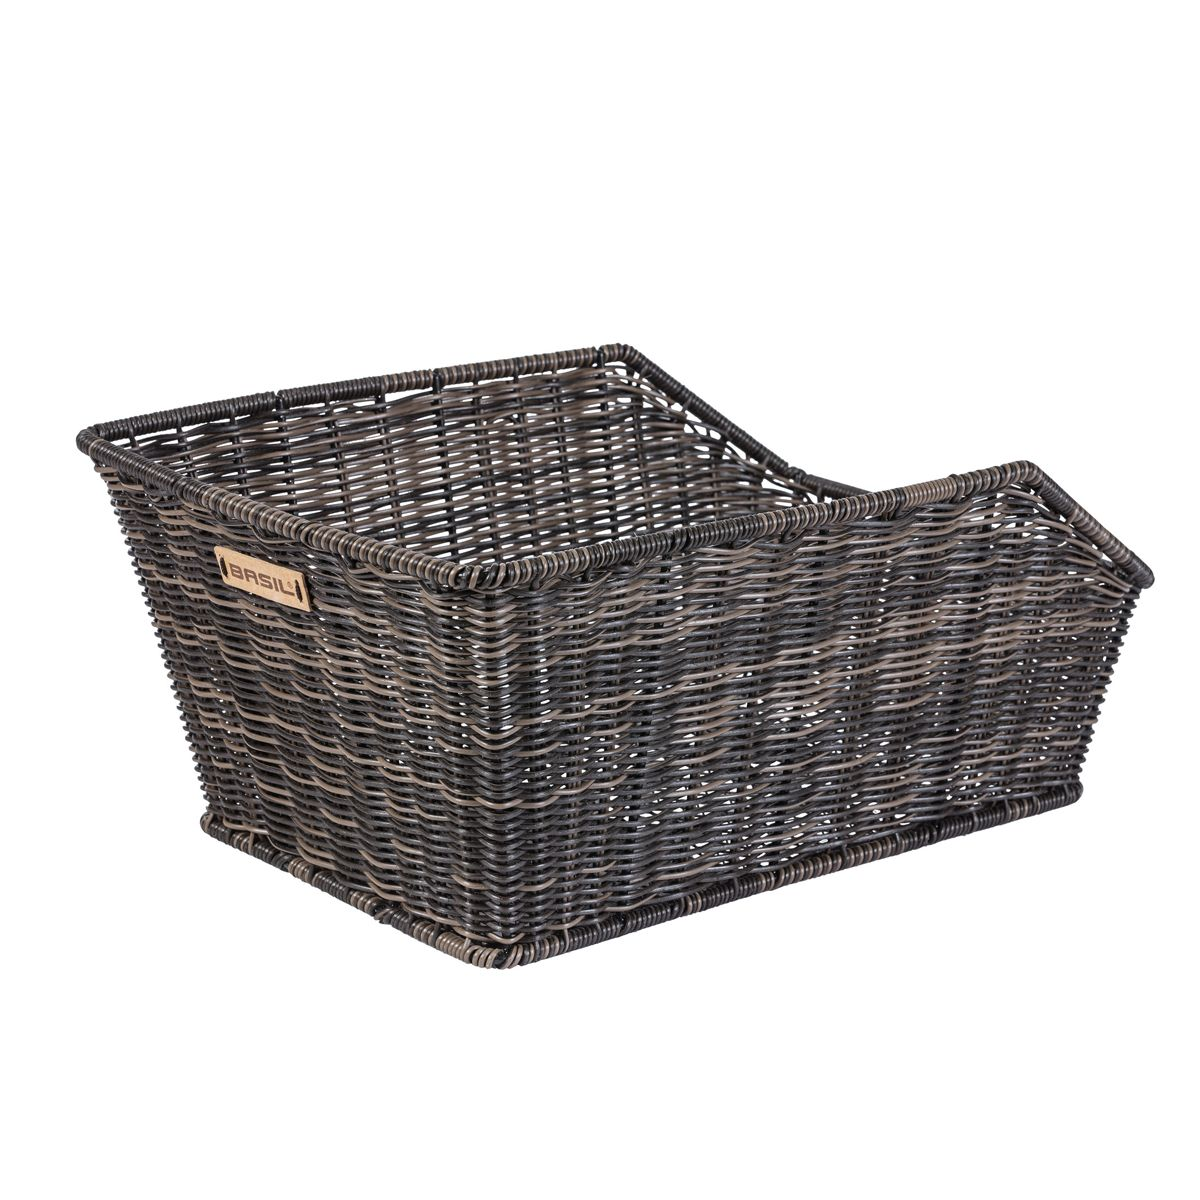 CENTO RATTAN LOOK rear bicycle basket